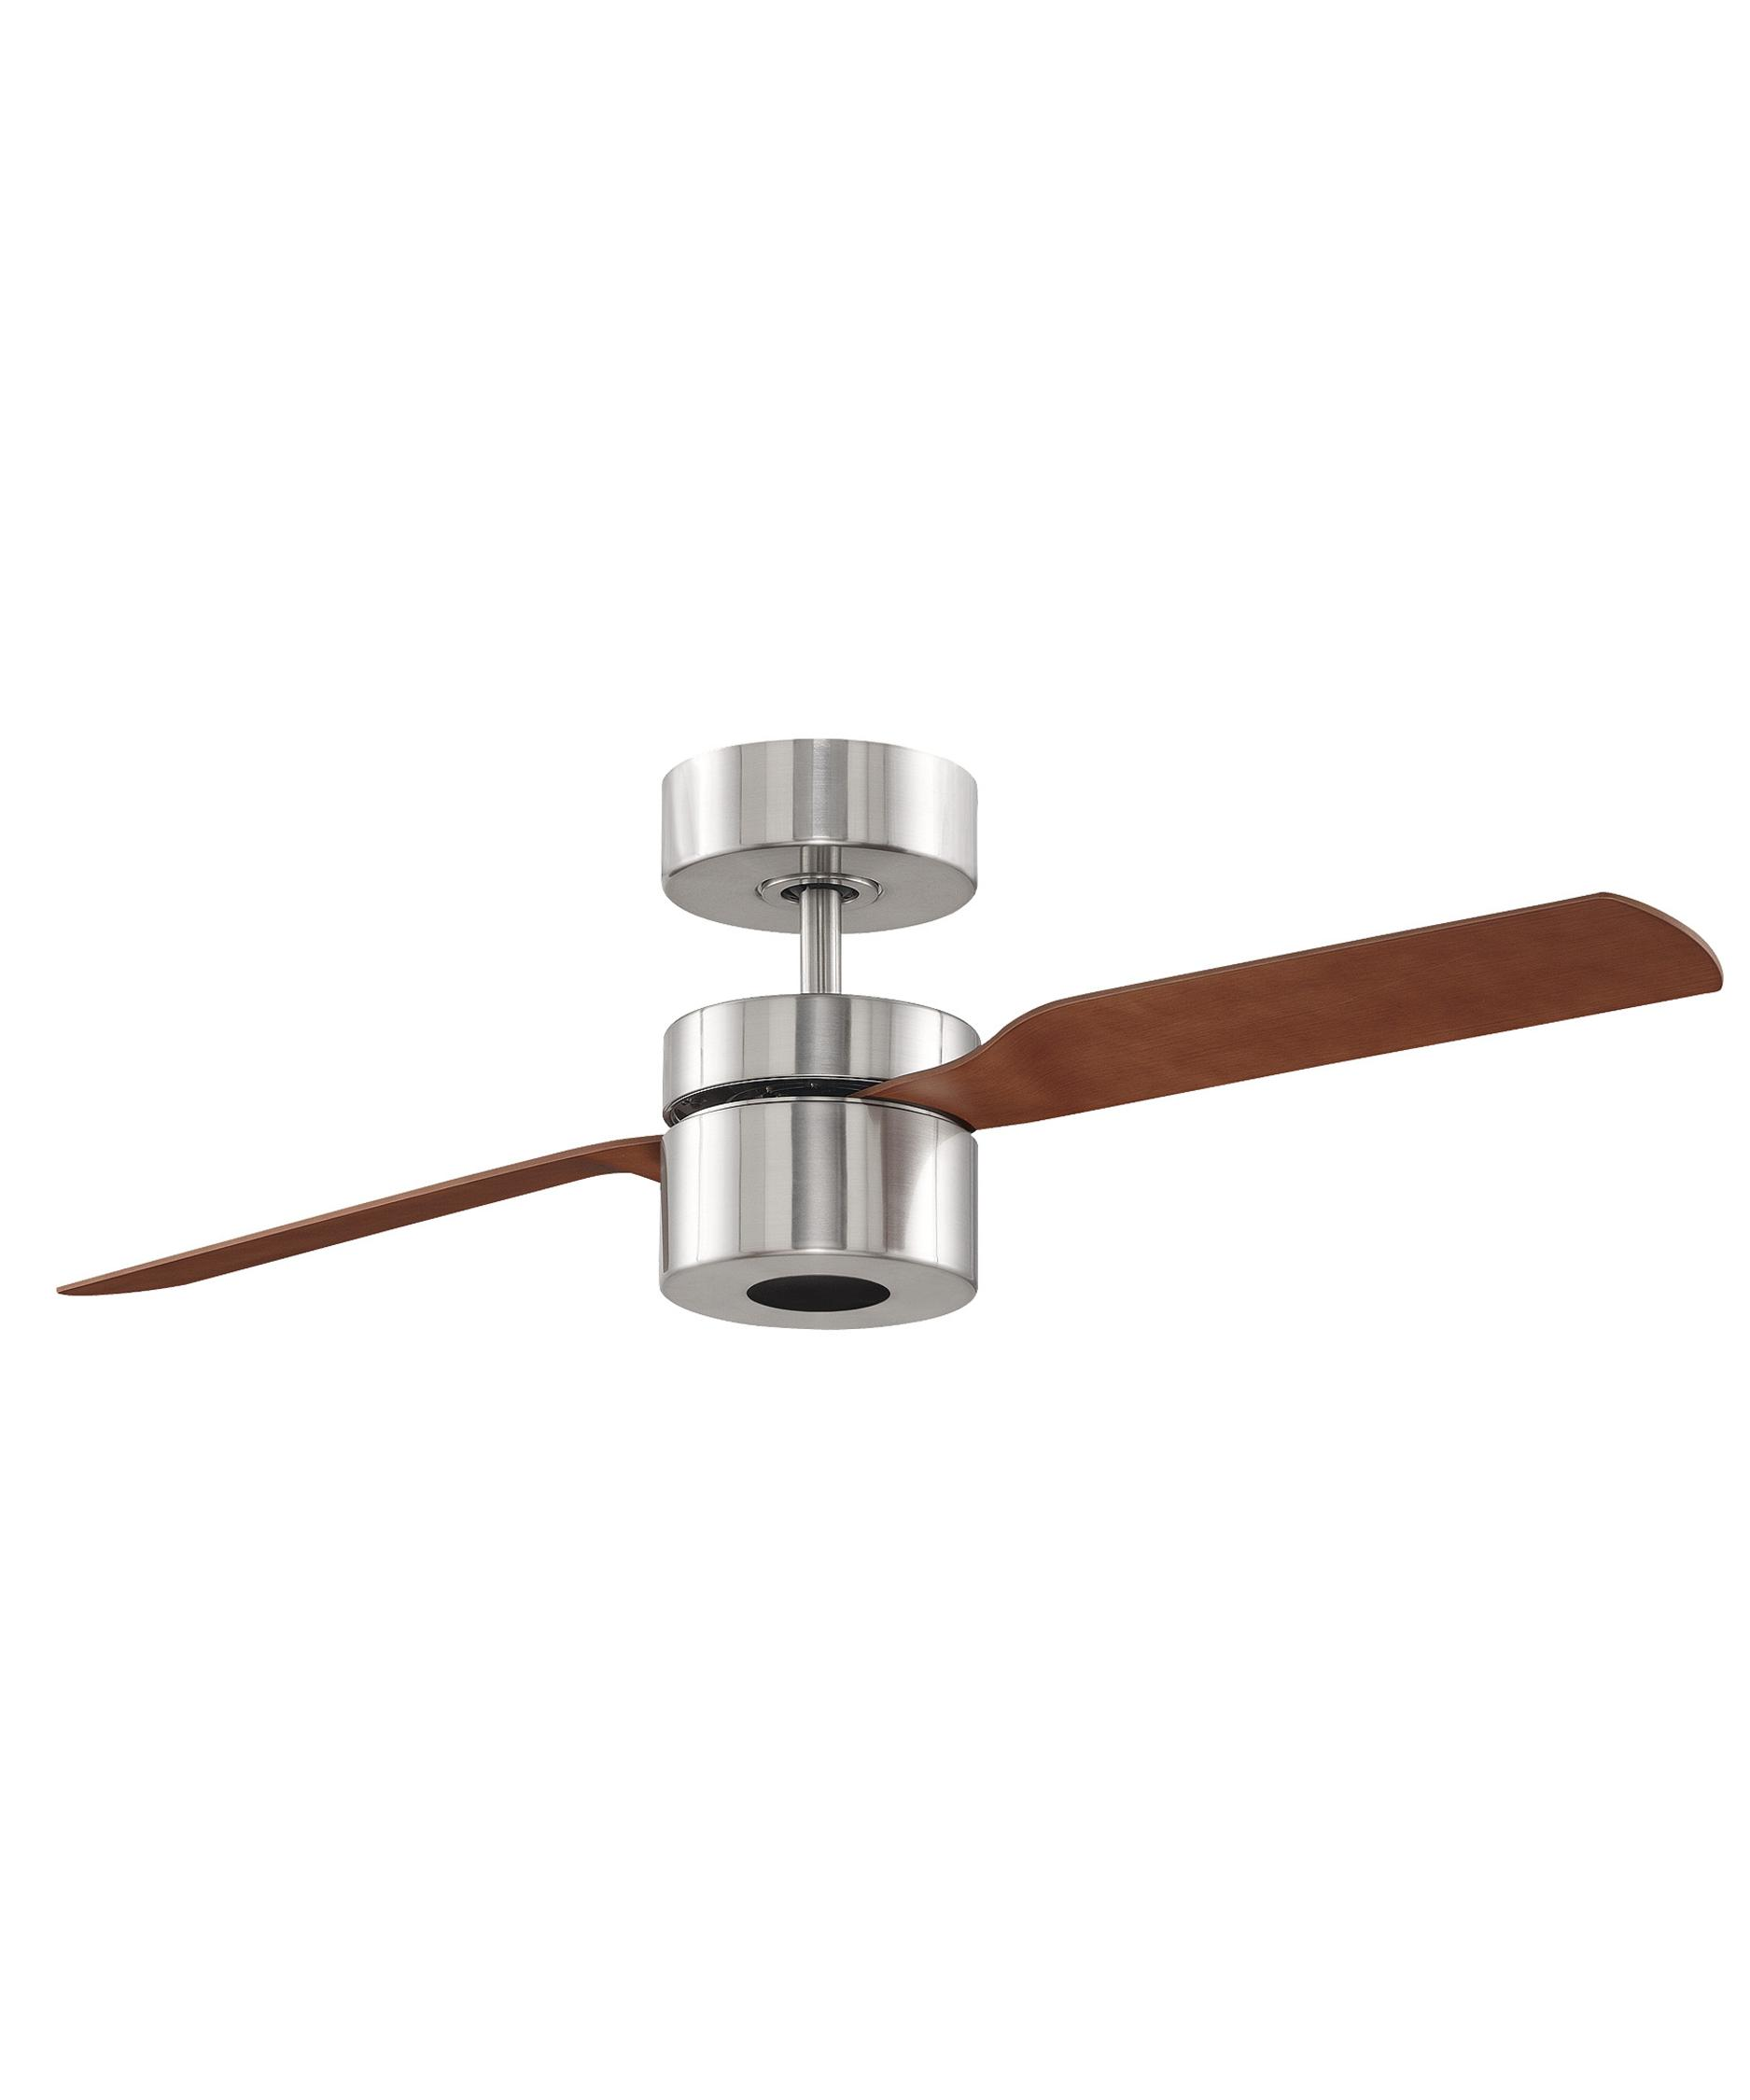 Dual Outdoor Ceiling Fans With Lights 10 Benefits Of Two Blade Ceiling Fans Warisan Lighting